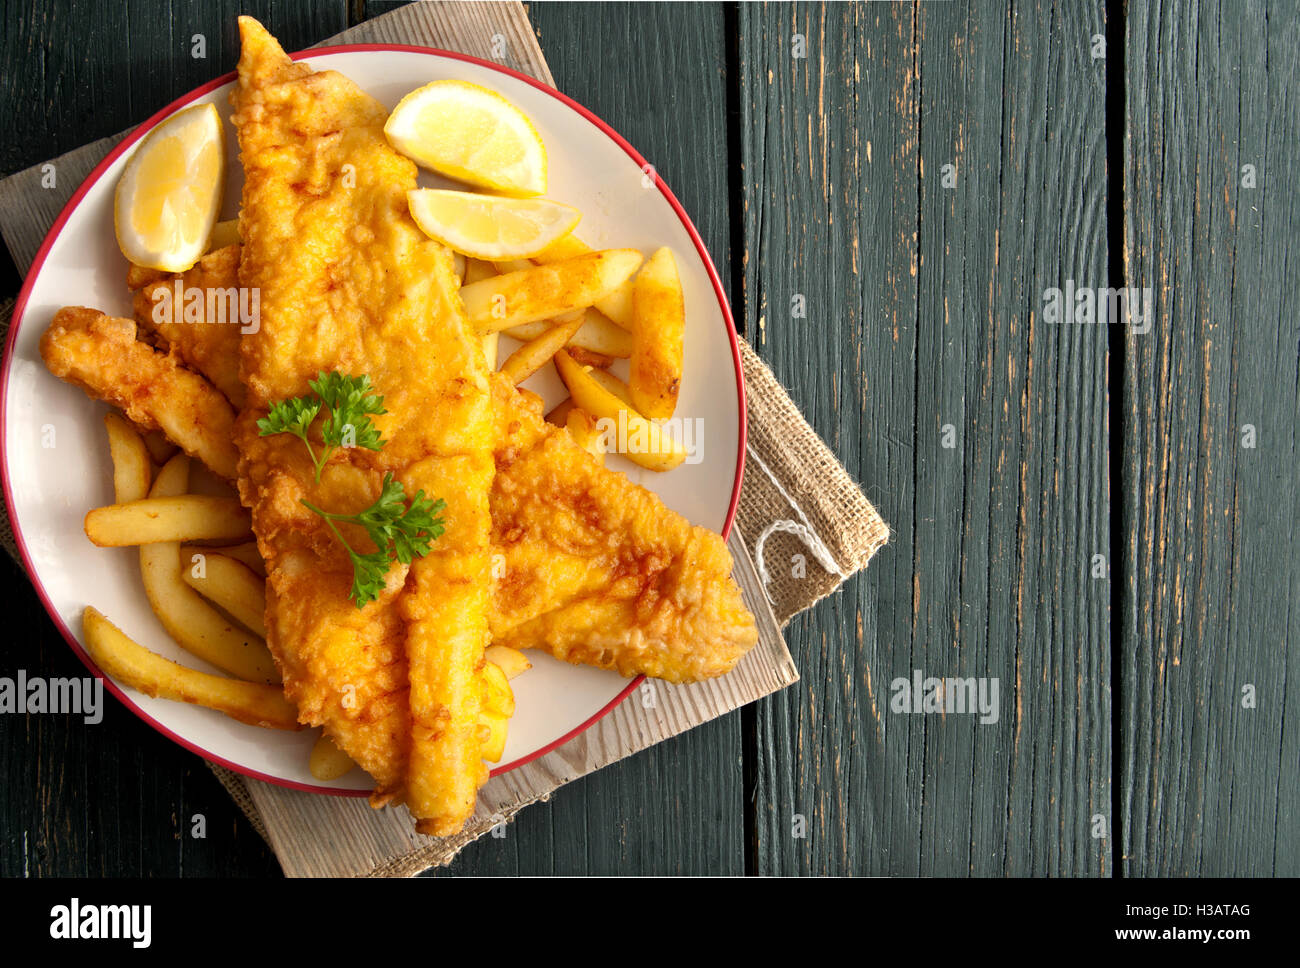 Close up of battered fish on a plate with chips - Stock Image